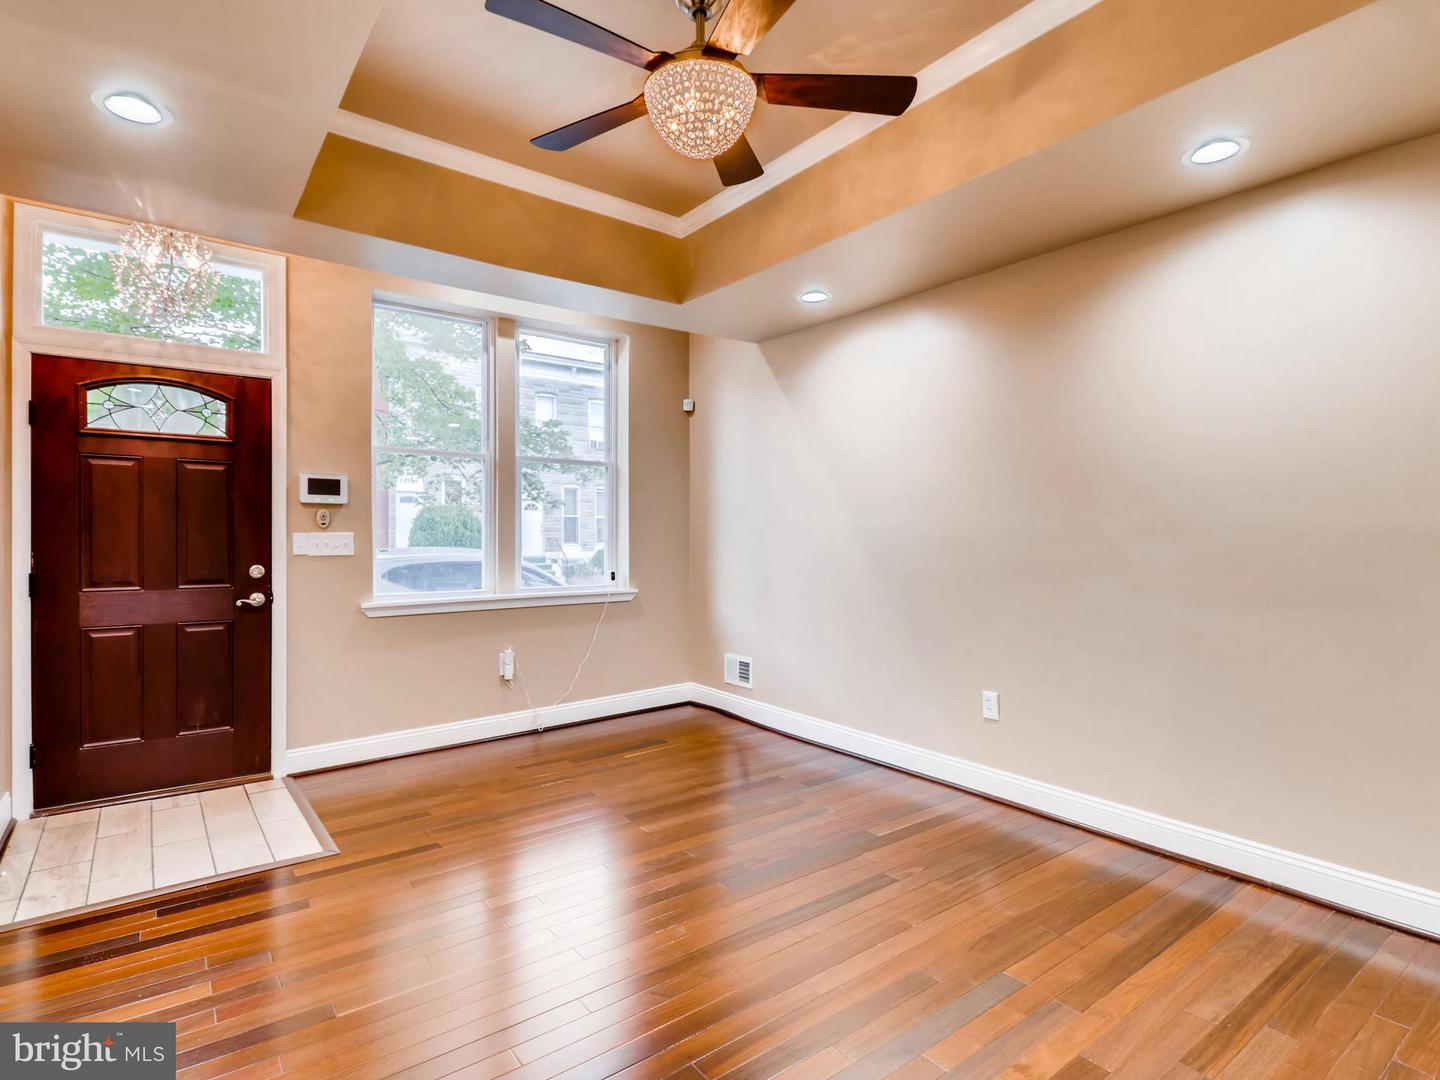 Single Family for Sale at 1401 Lanvale St E Baltimore, Maryland 21213 United States